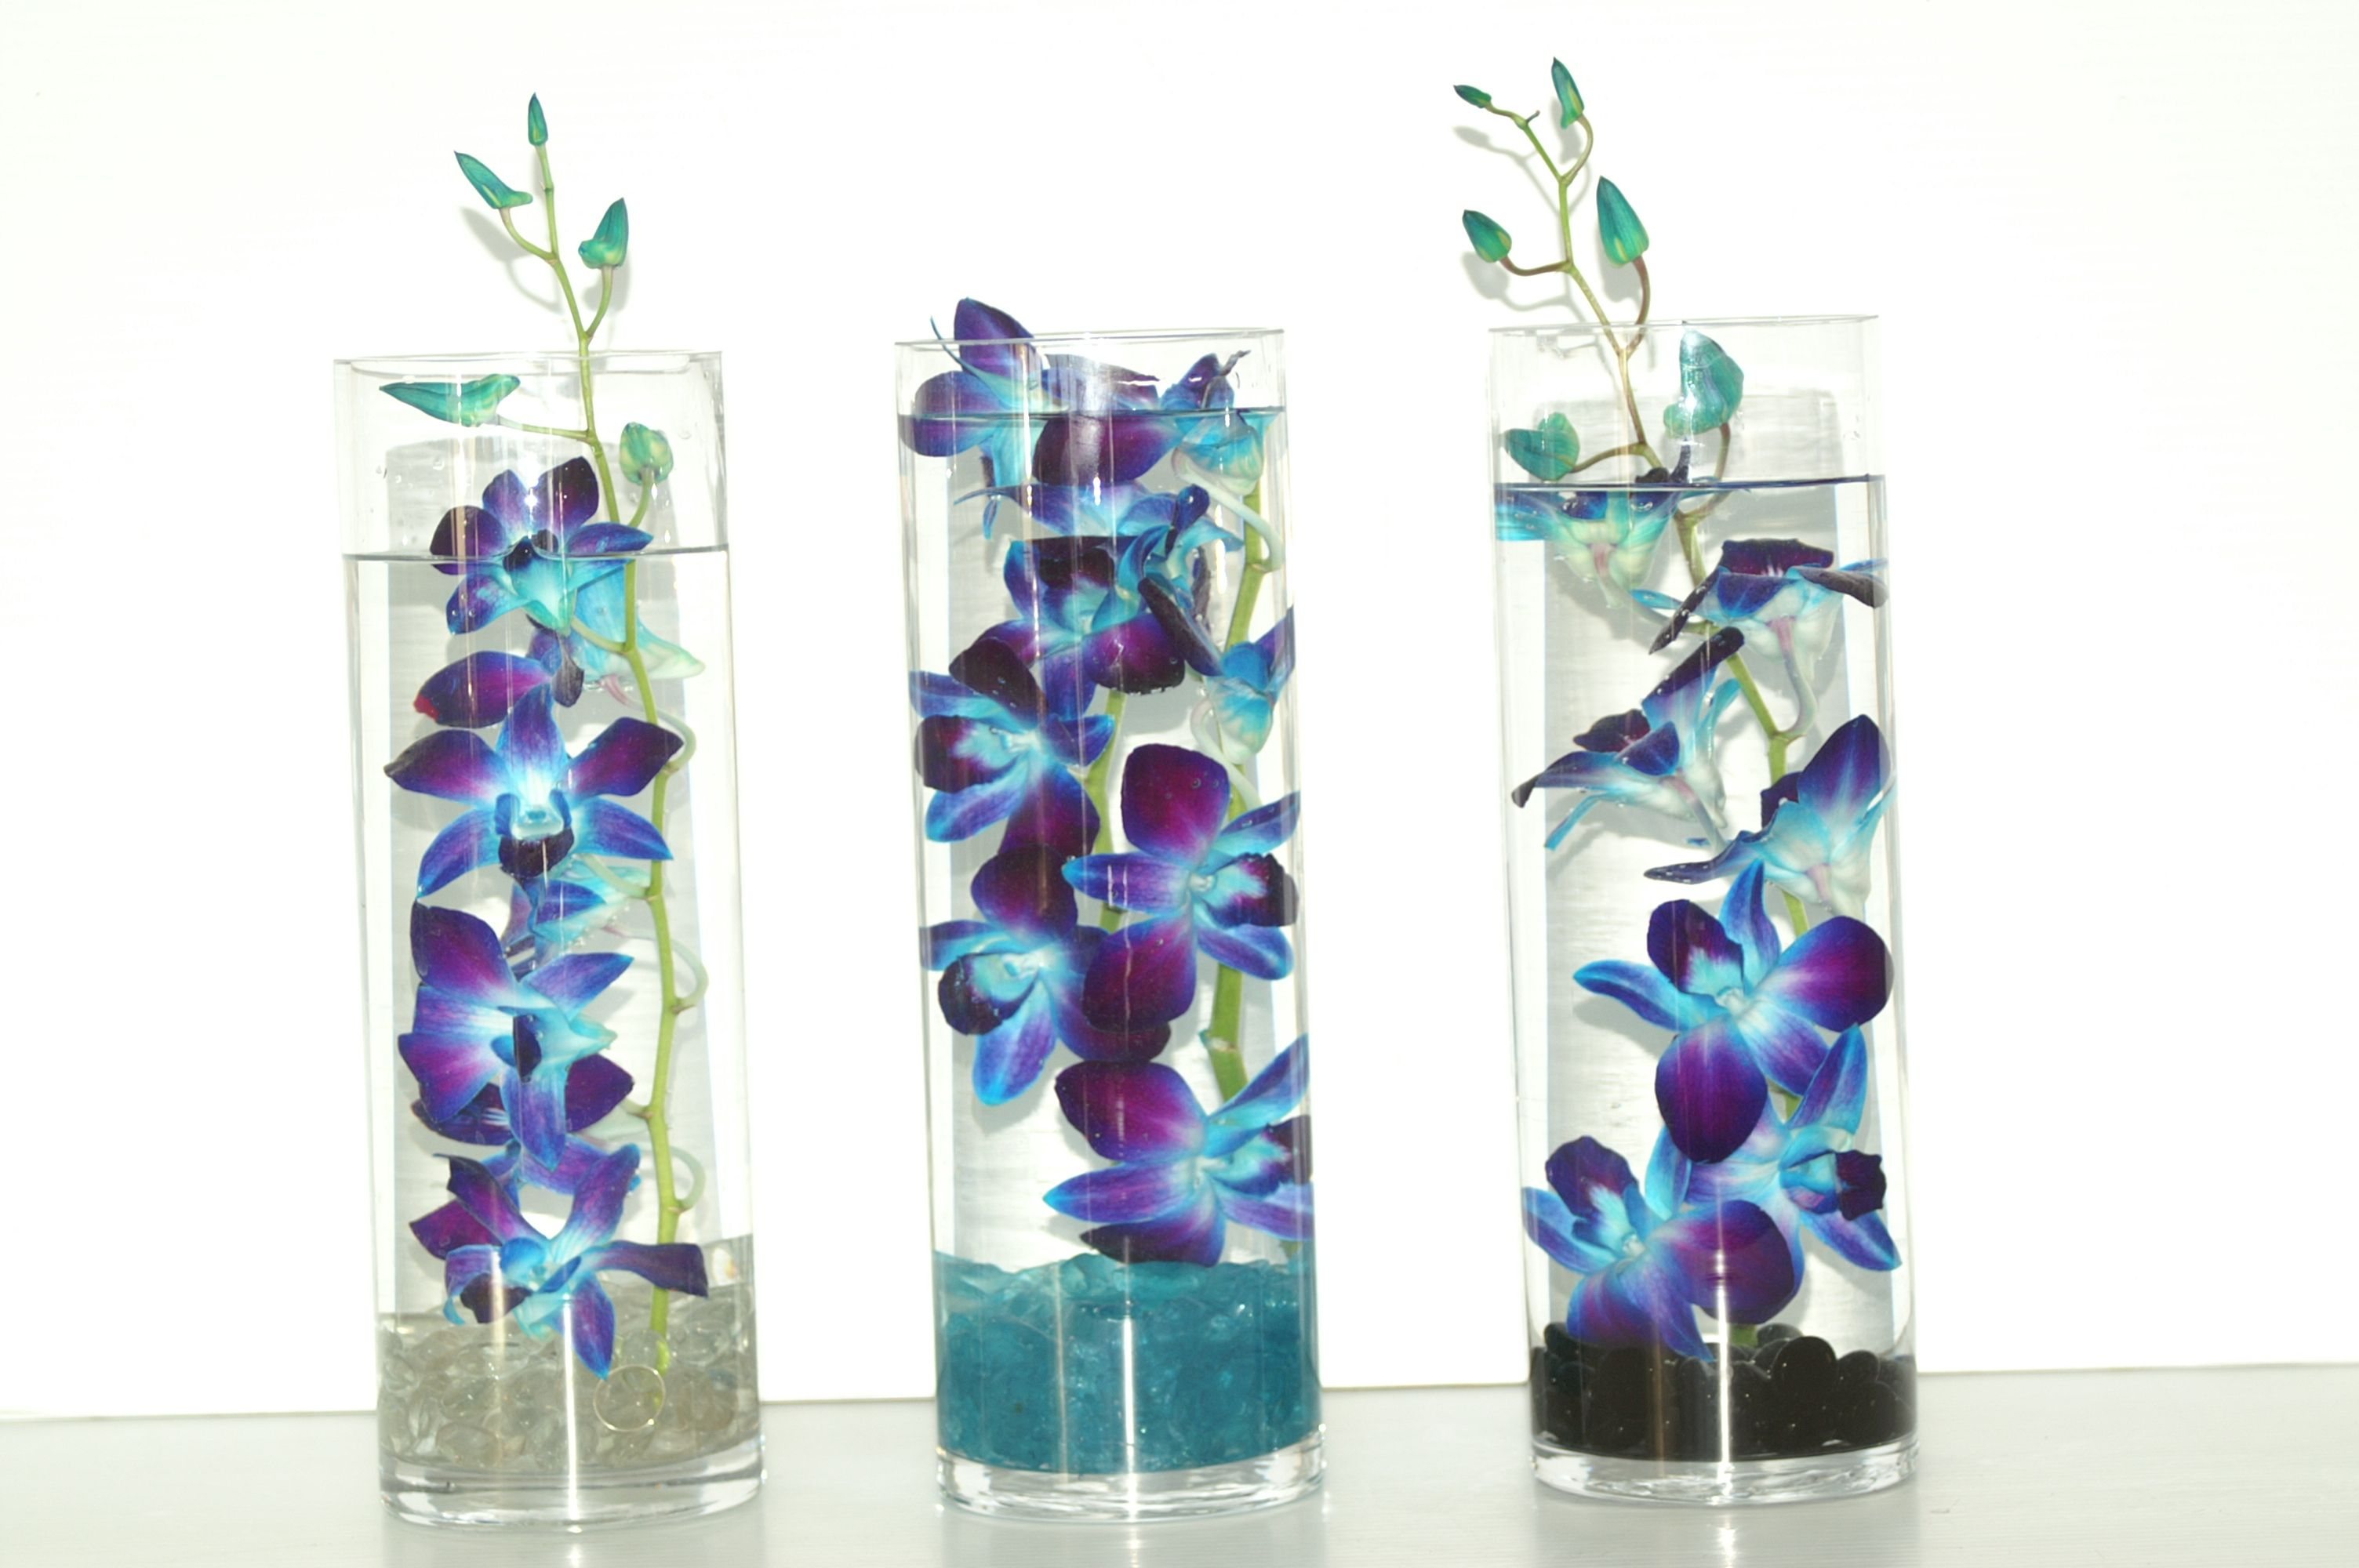 Tinted blue Dendrobium Orchids submerged in glass Cylinders with ...